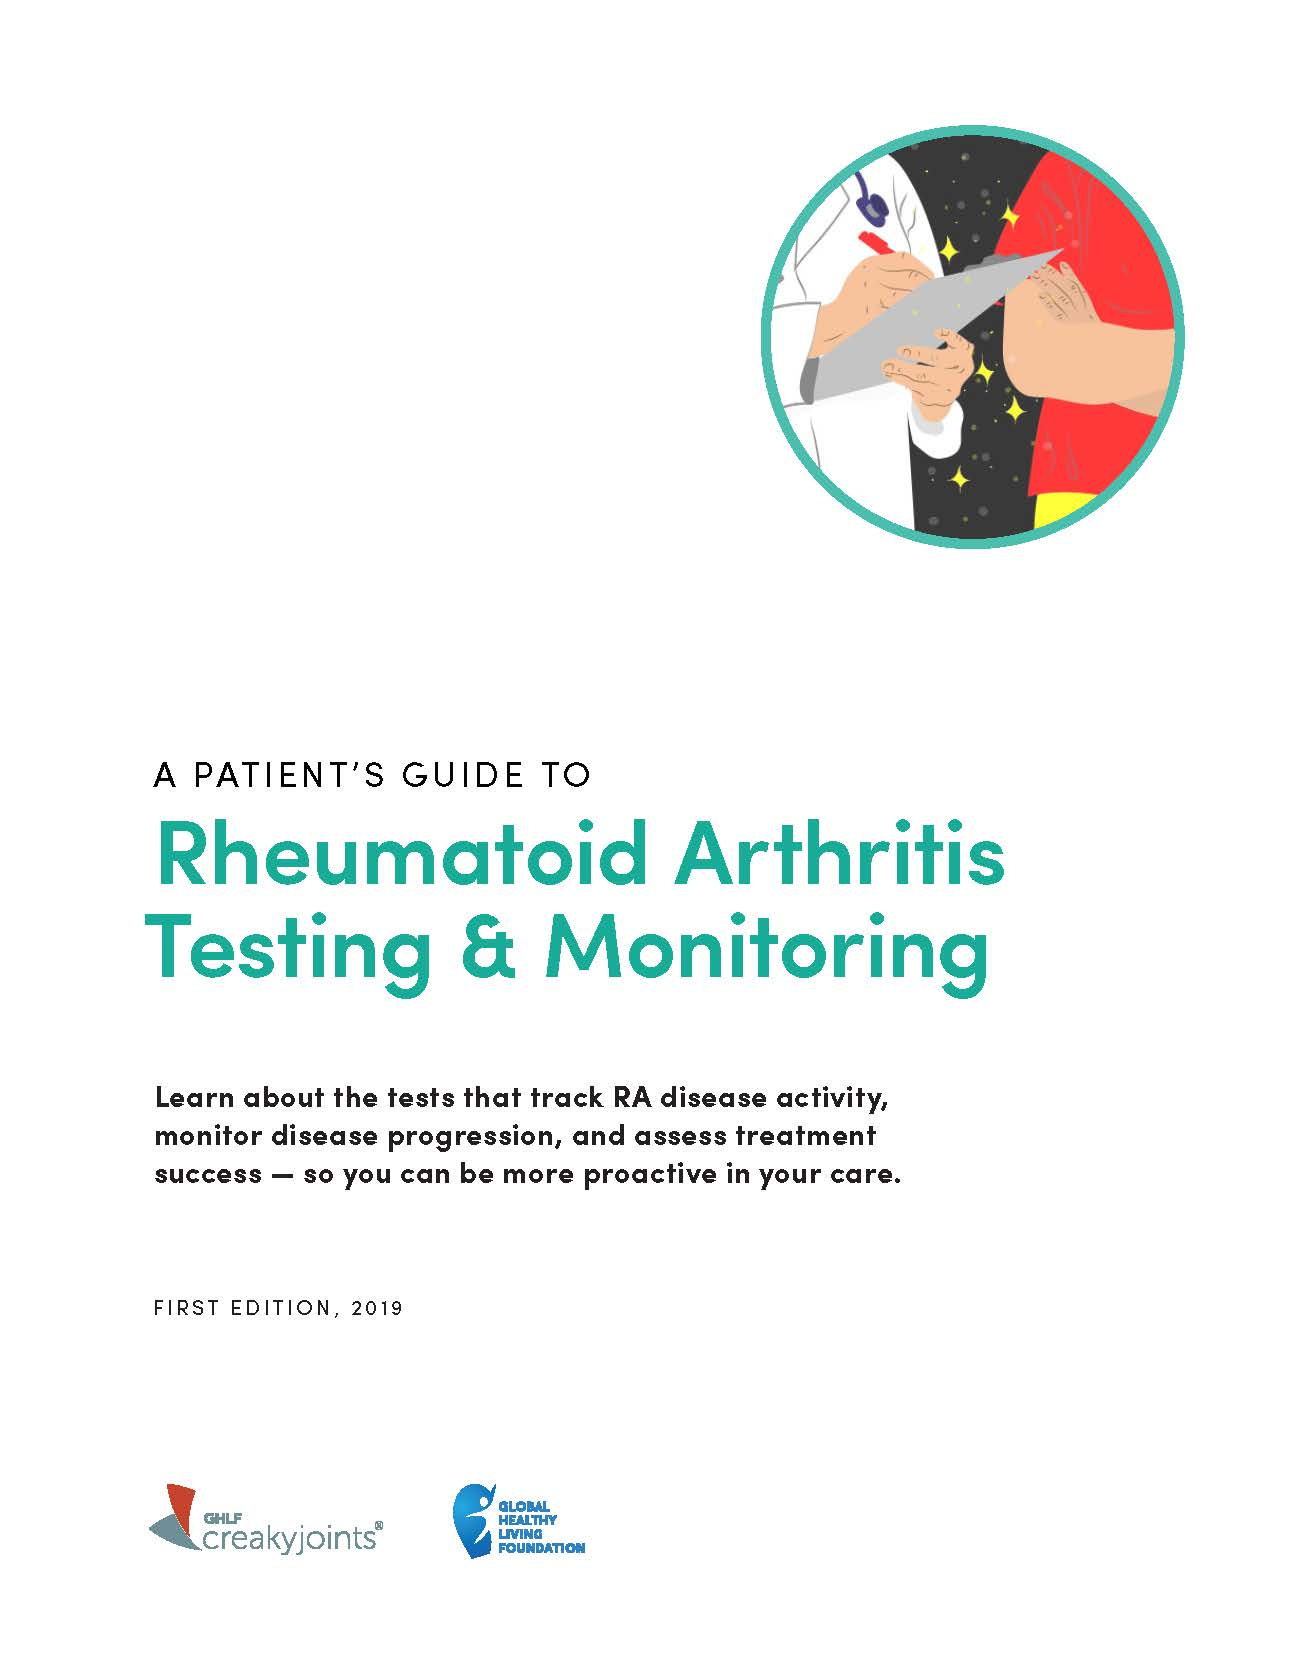 Image reads: A Patient's Guide to Rheumatoid Arthritis Testing and Monitoring Learn about the tests that track RA disease activity, monitor disease progression, and assess treatment success- so you can be more proactive in your care.